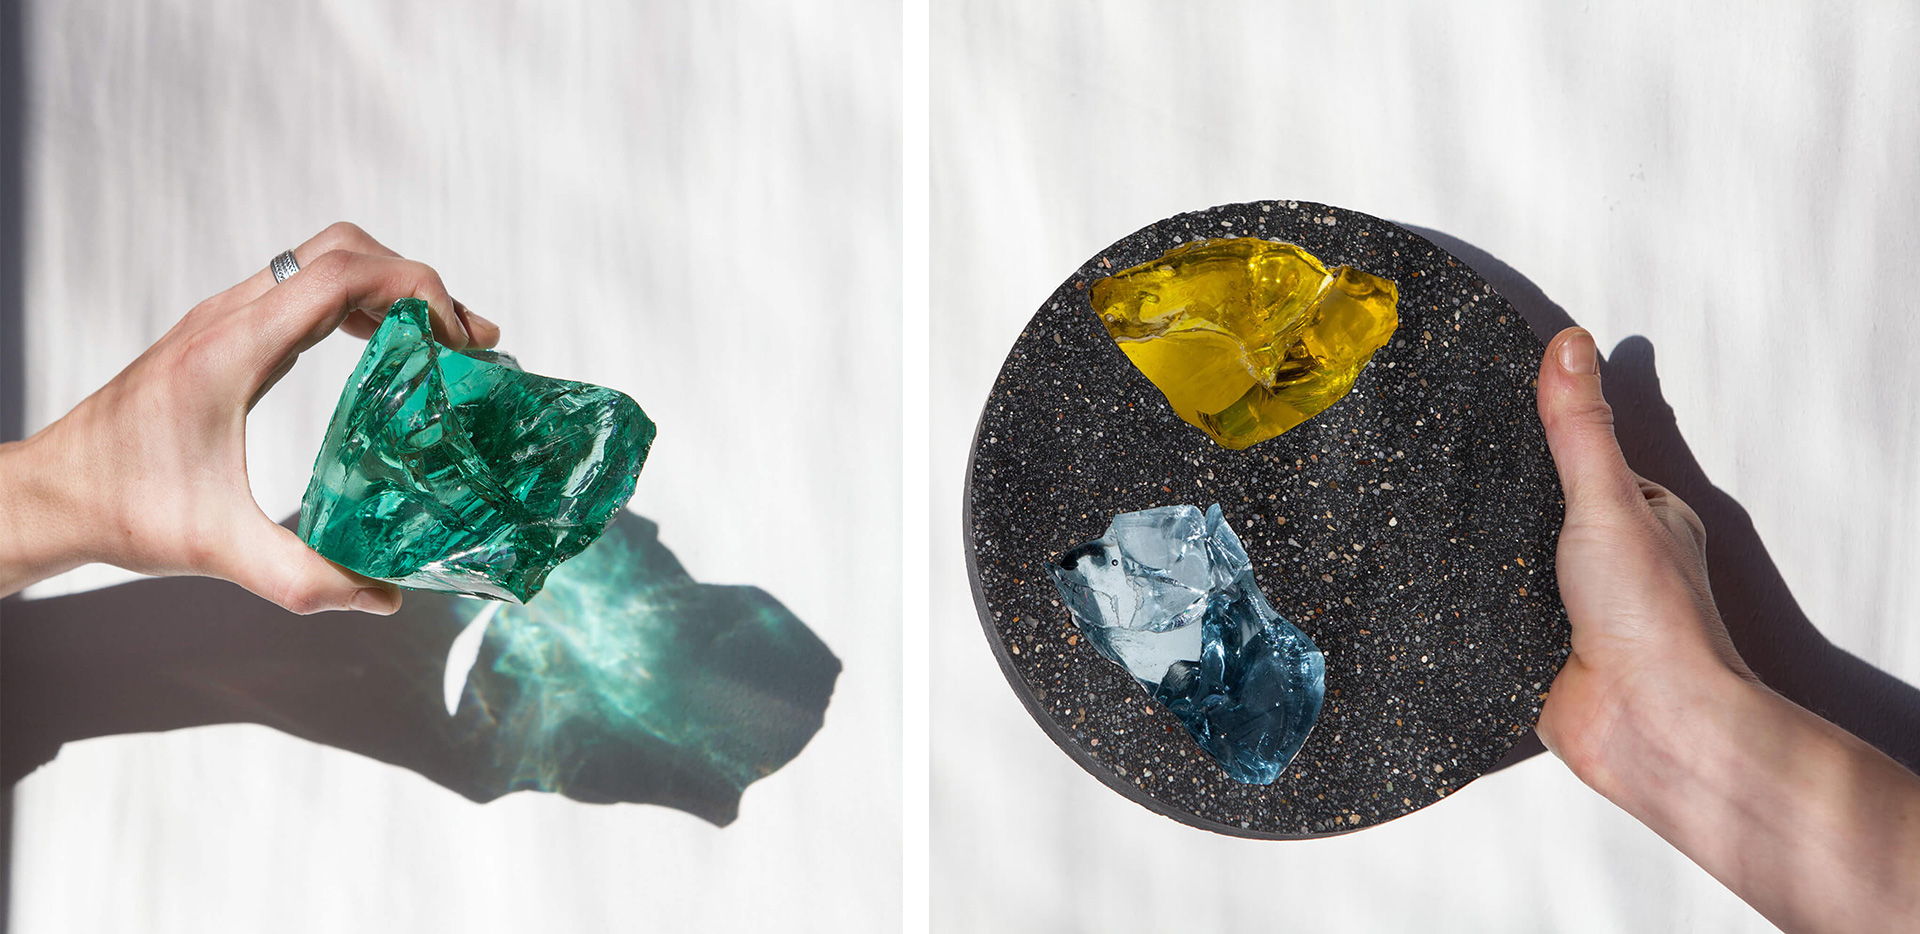 Reusing leftover or defected pieces of glass from different sources, the duo embeds these pieces in a pigmented cement mixture to create unique compositions | Basis Rho by Jeschkelanger | STIRworld